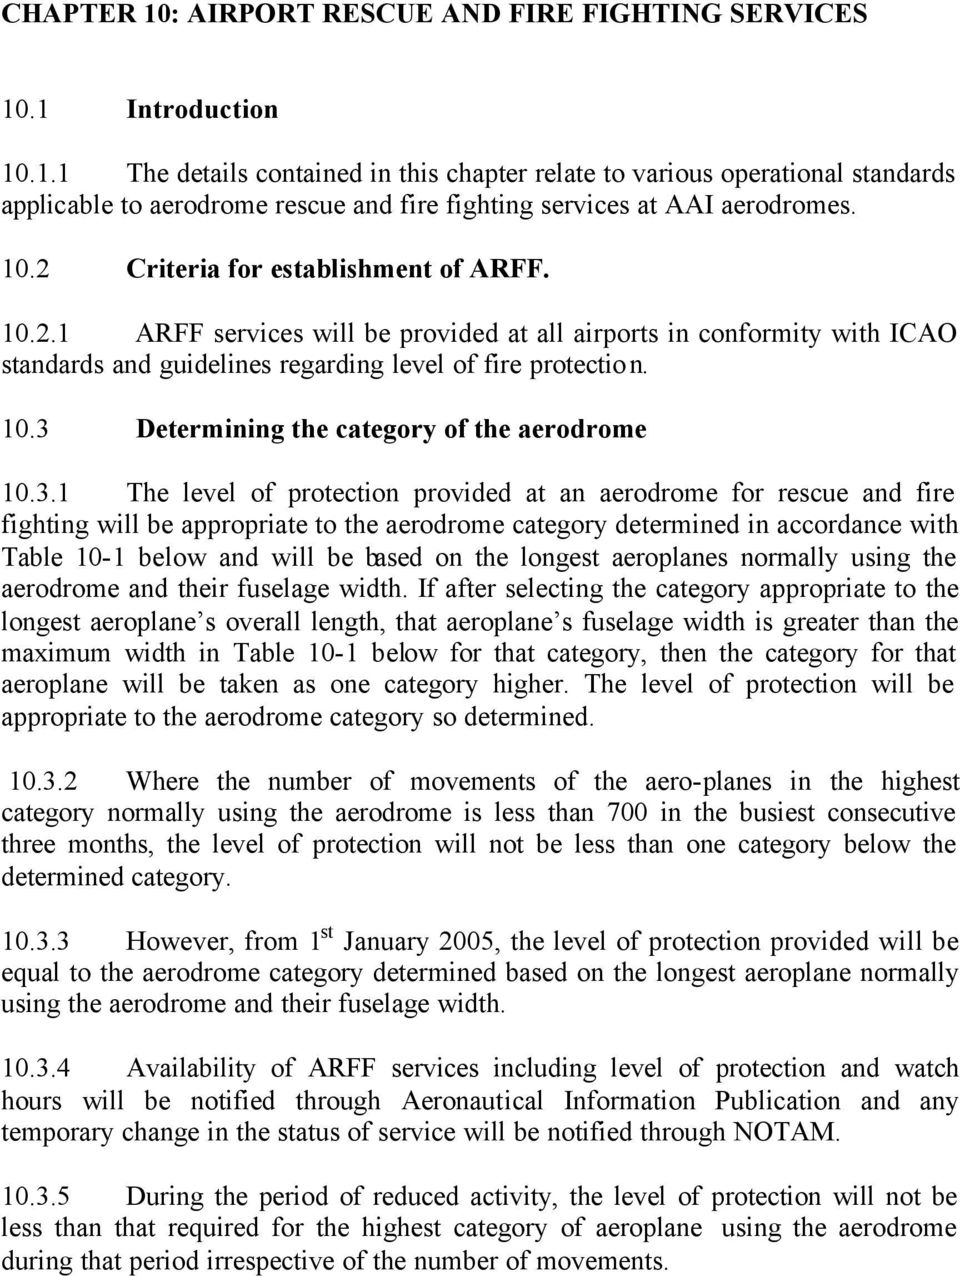 3.1 The level of protection provided at an aerodrome for rescue and fire fighting will be appropriate to the aerodrome category determined in accordance with Table 10-1 below and will be based on the